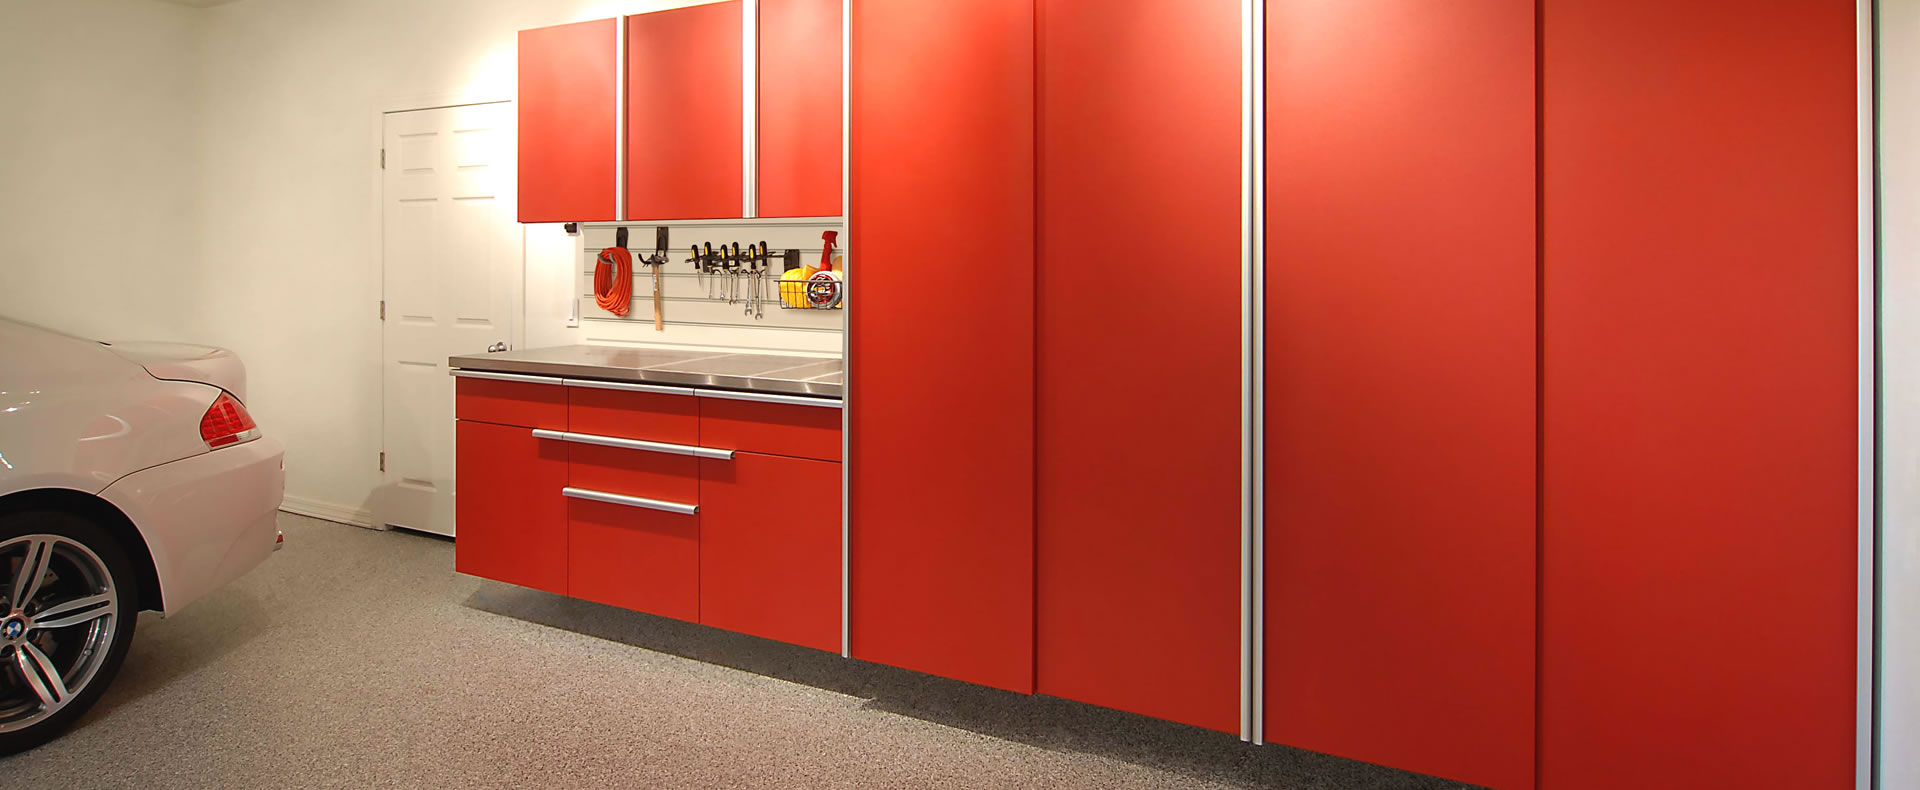 Garage Experts Of The Central Valley Garage Flooring Garage Cabinets Storage And Organization Systems